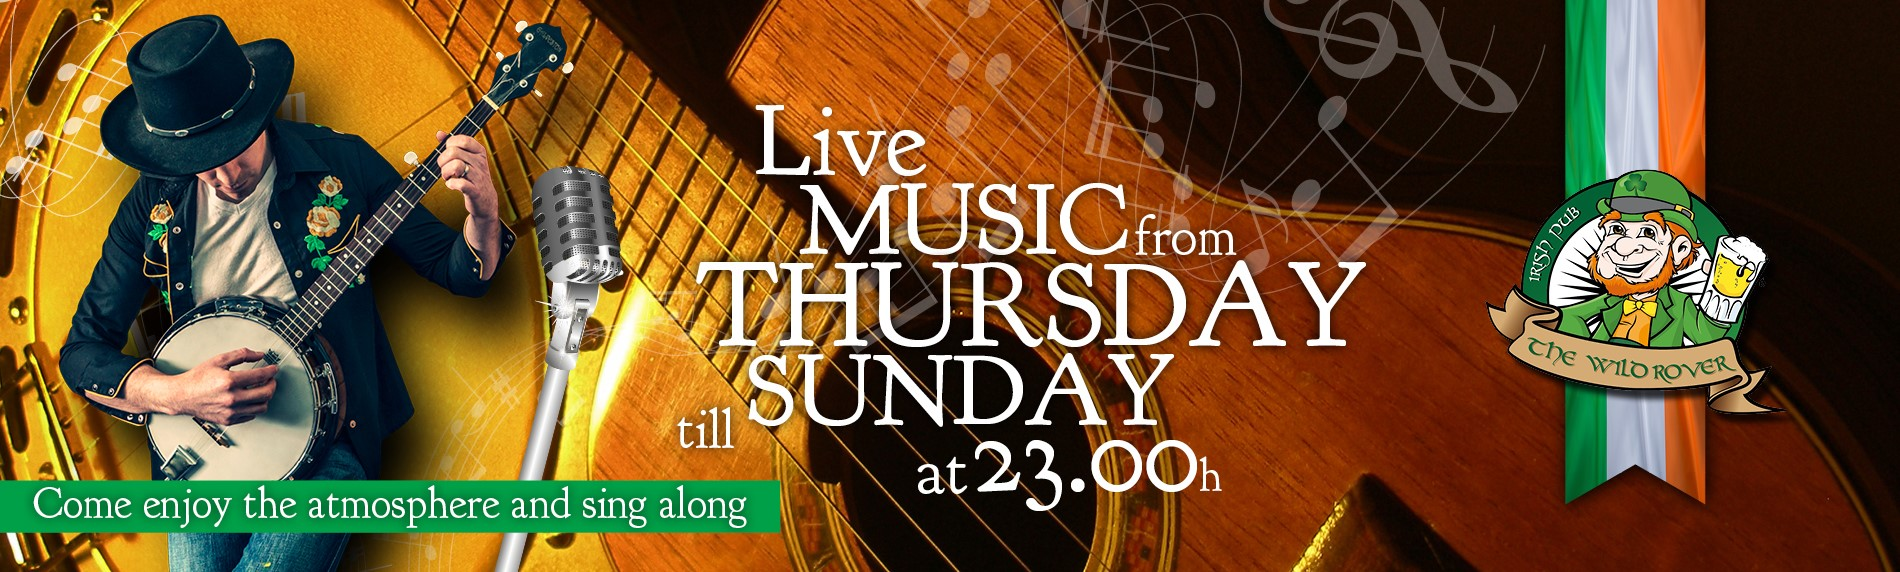 Live music from thursday till sunday at 23.00. Come enjoy the atmosphere and sing along